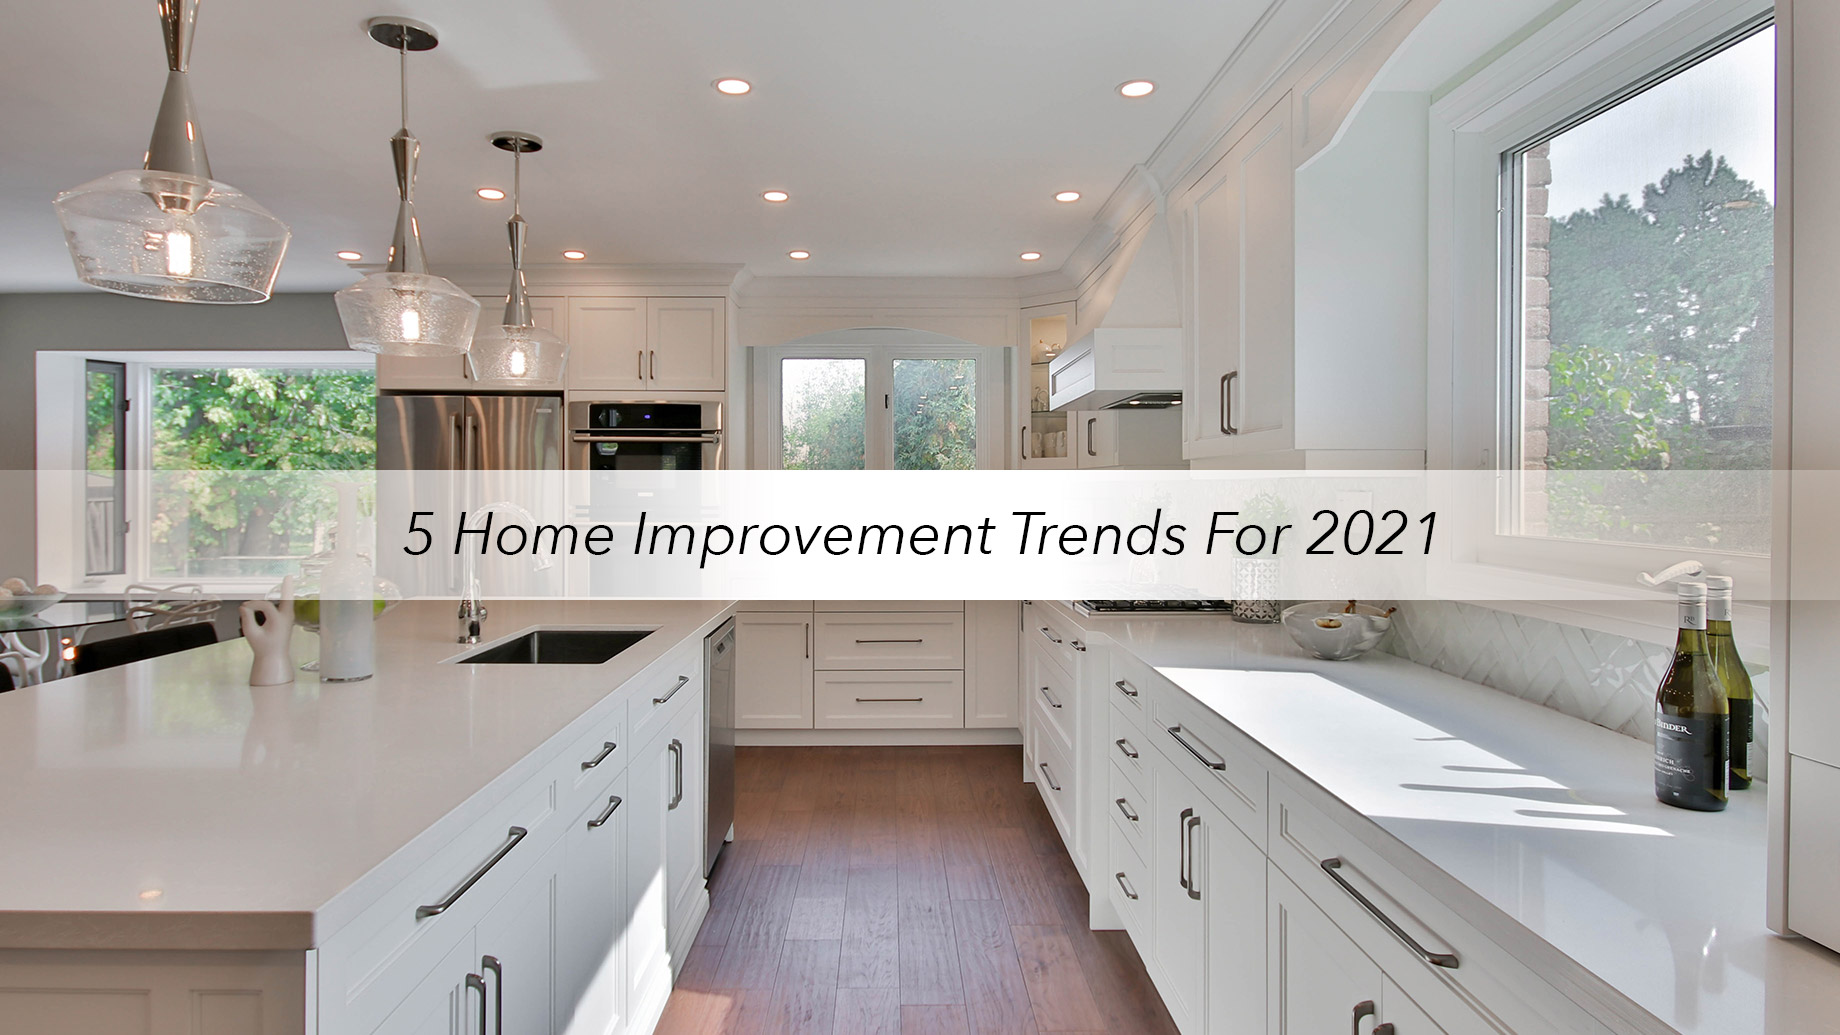 5 Home Improvement Trends For 2021